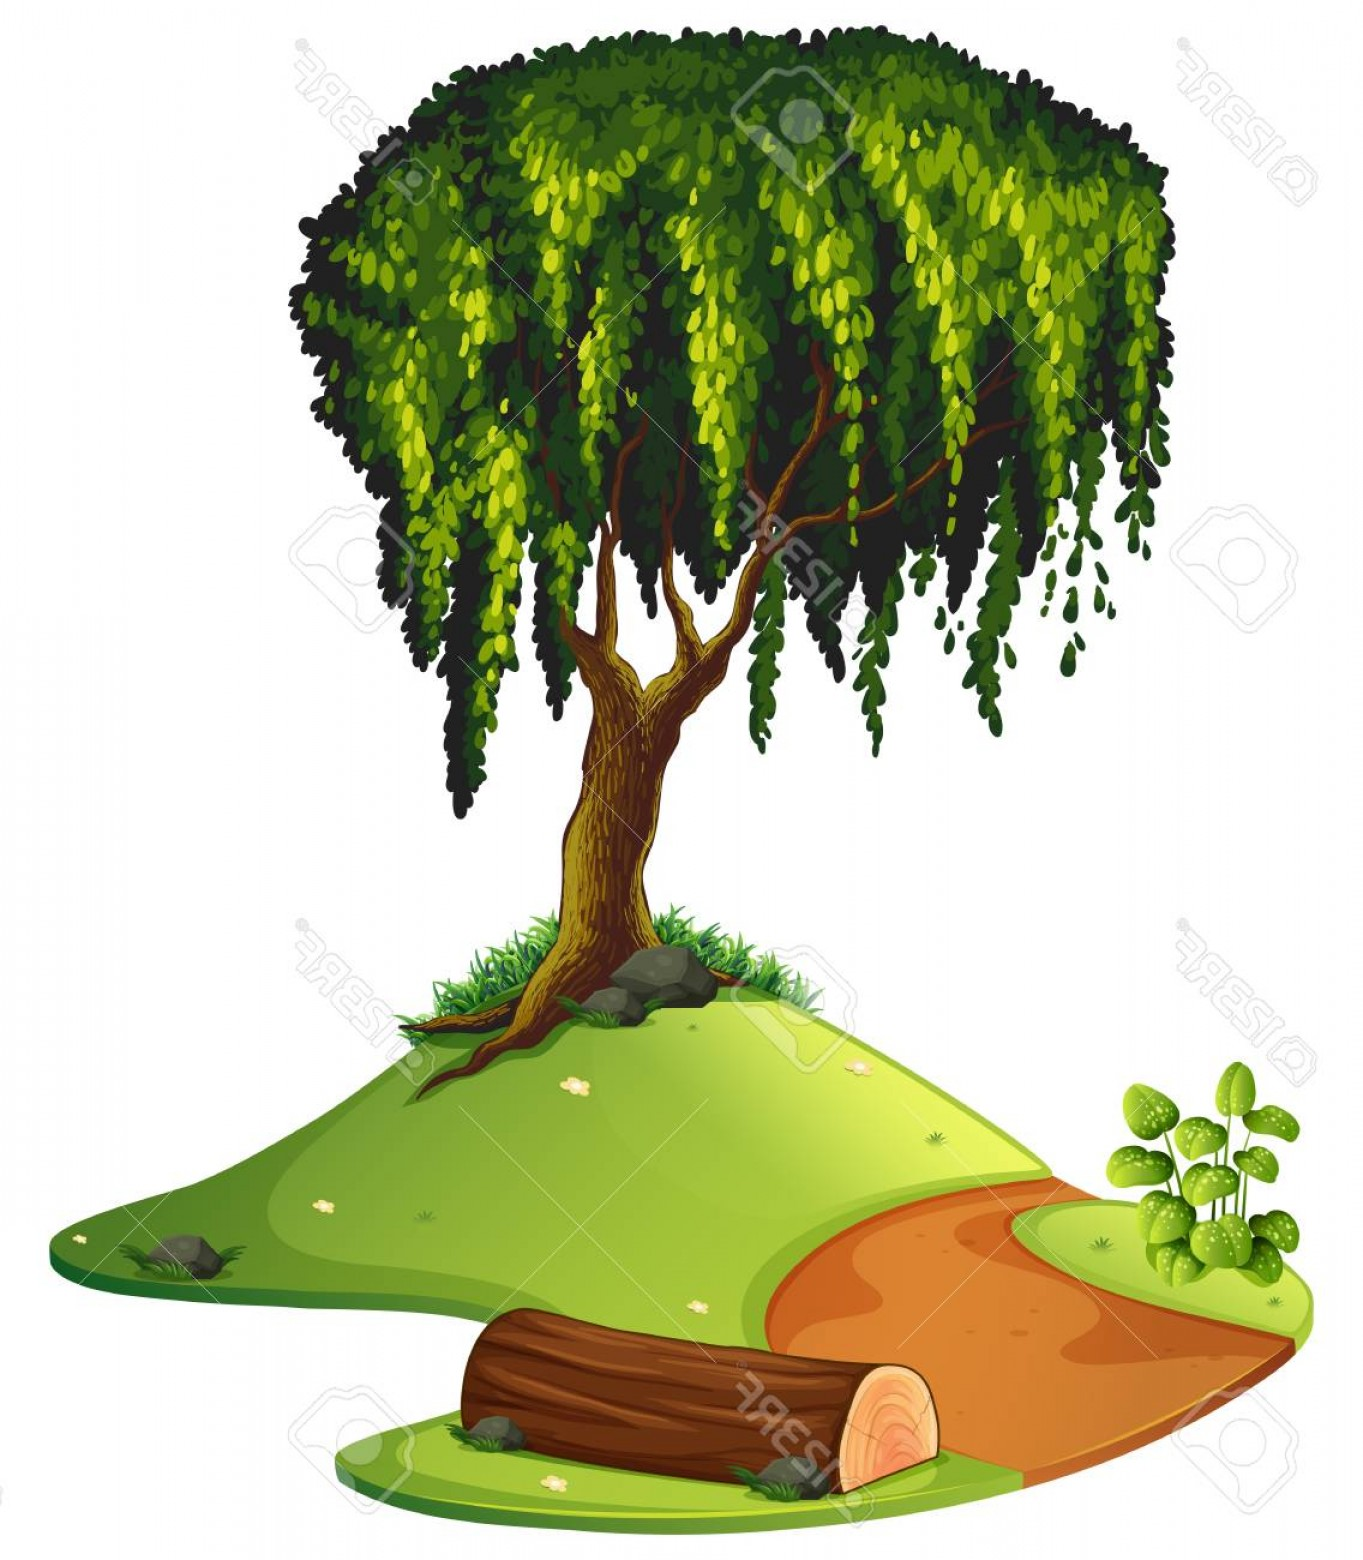 Vector Natural Willow: Photostock Vector Nature Scene With Willow Tree By The Road Illustration